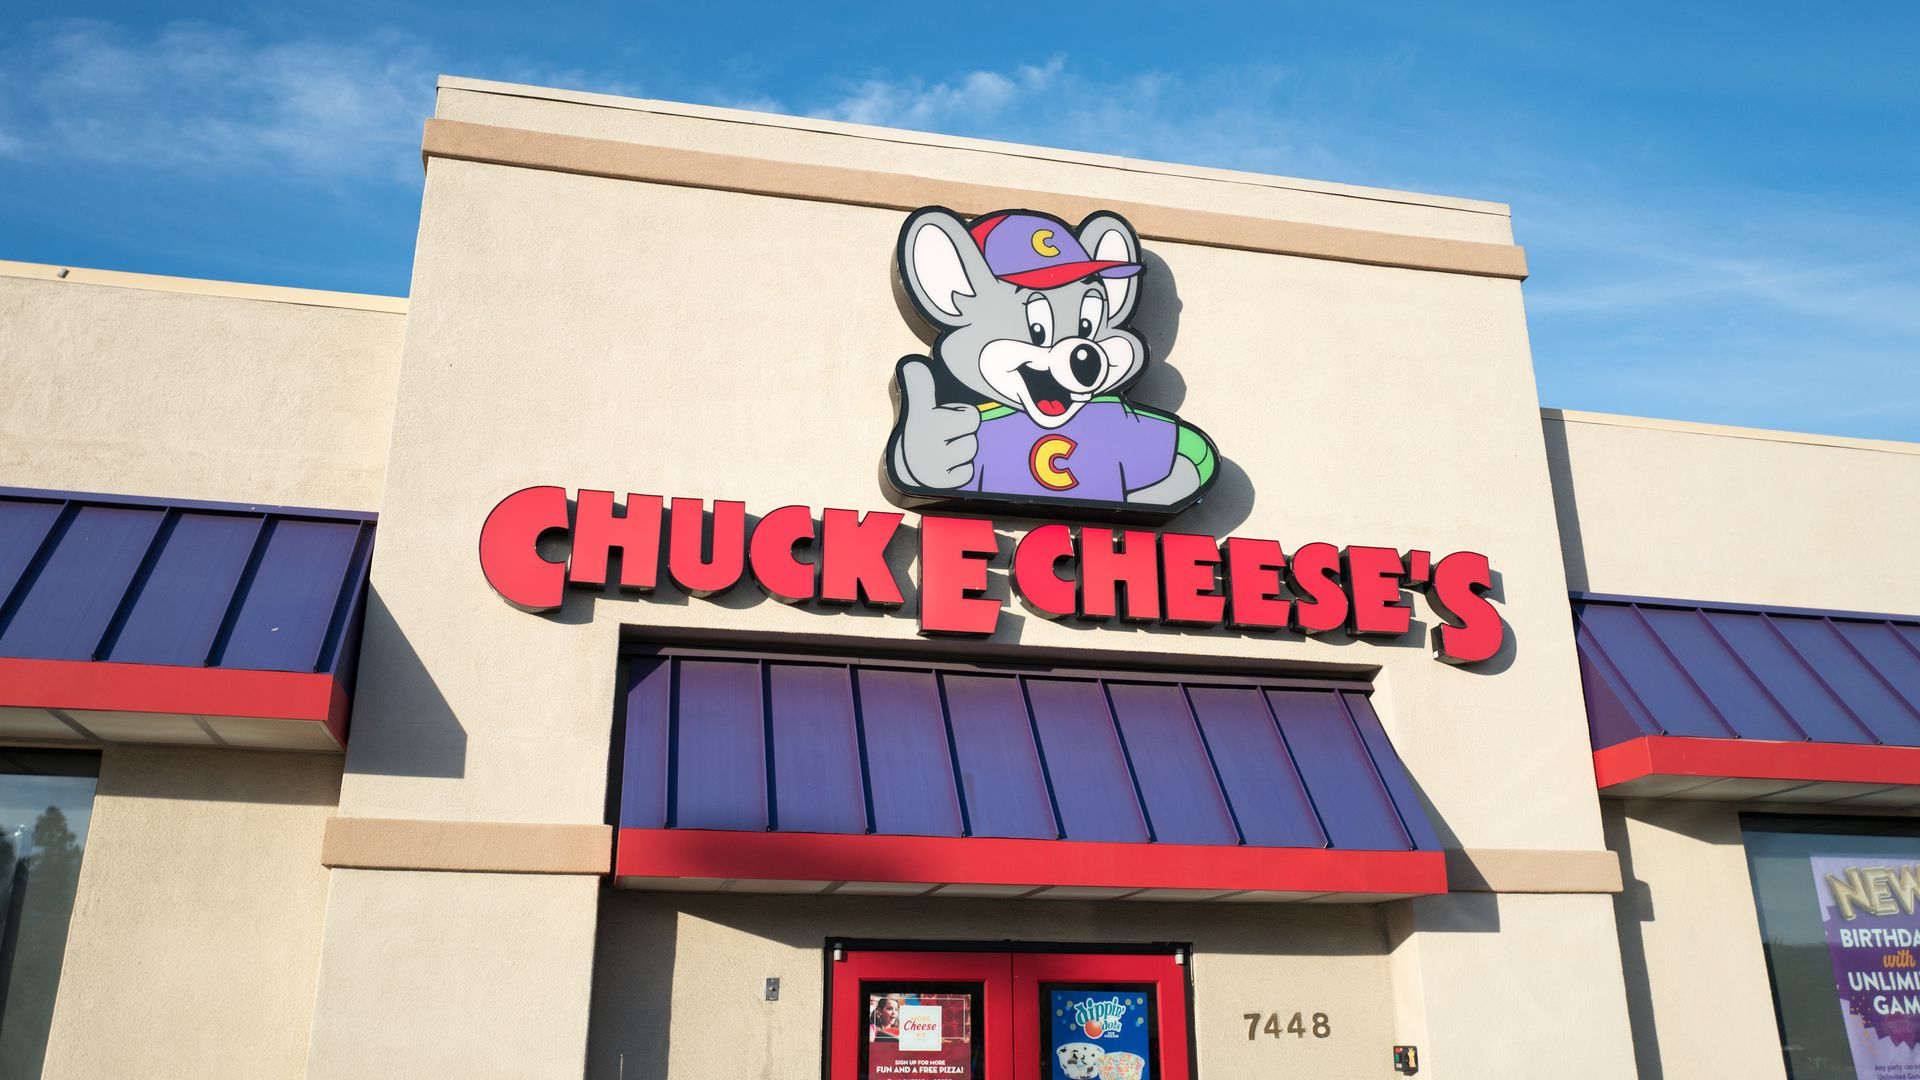 Chuck e cheese storefront.